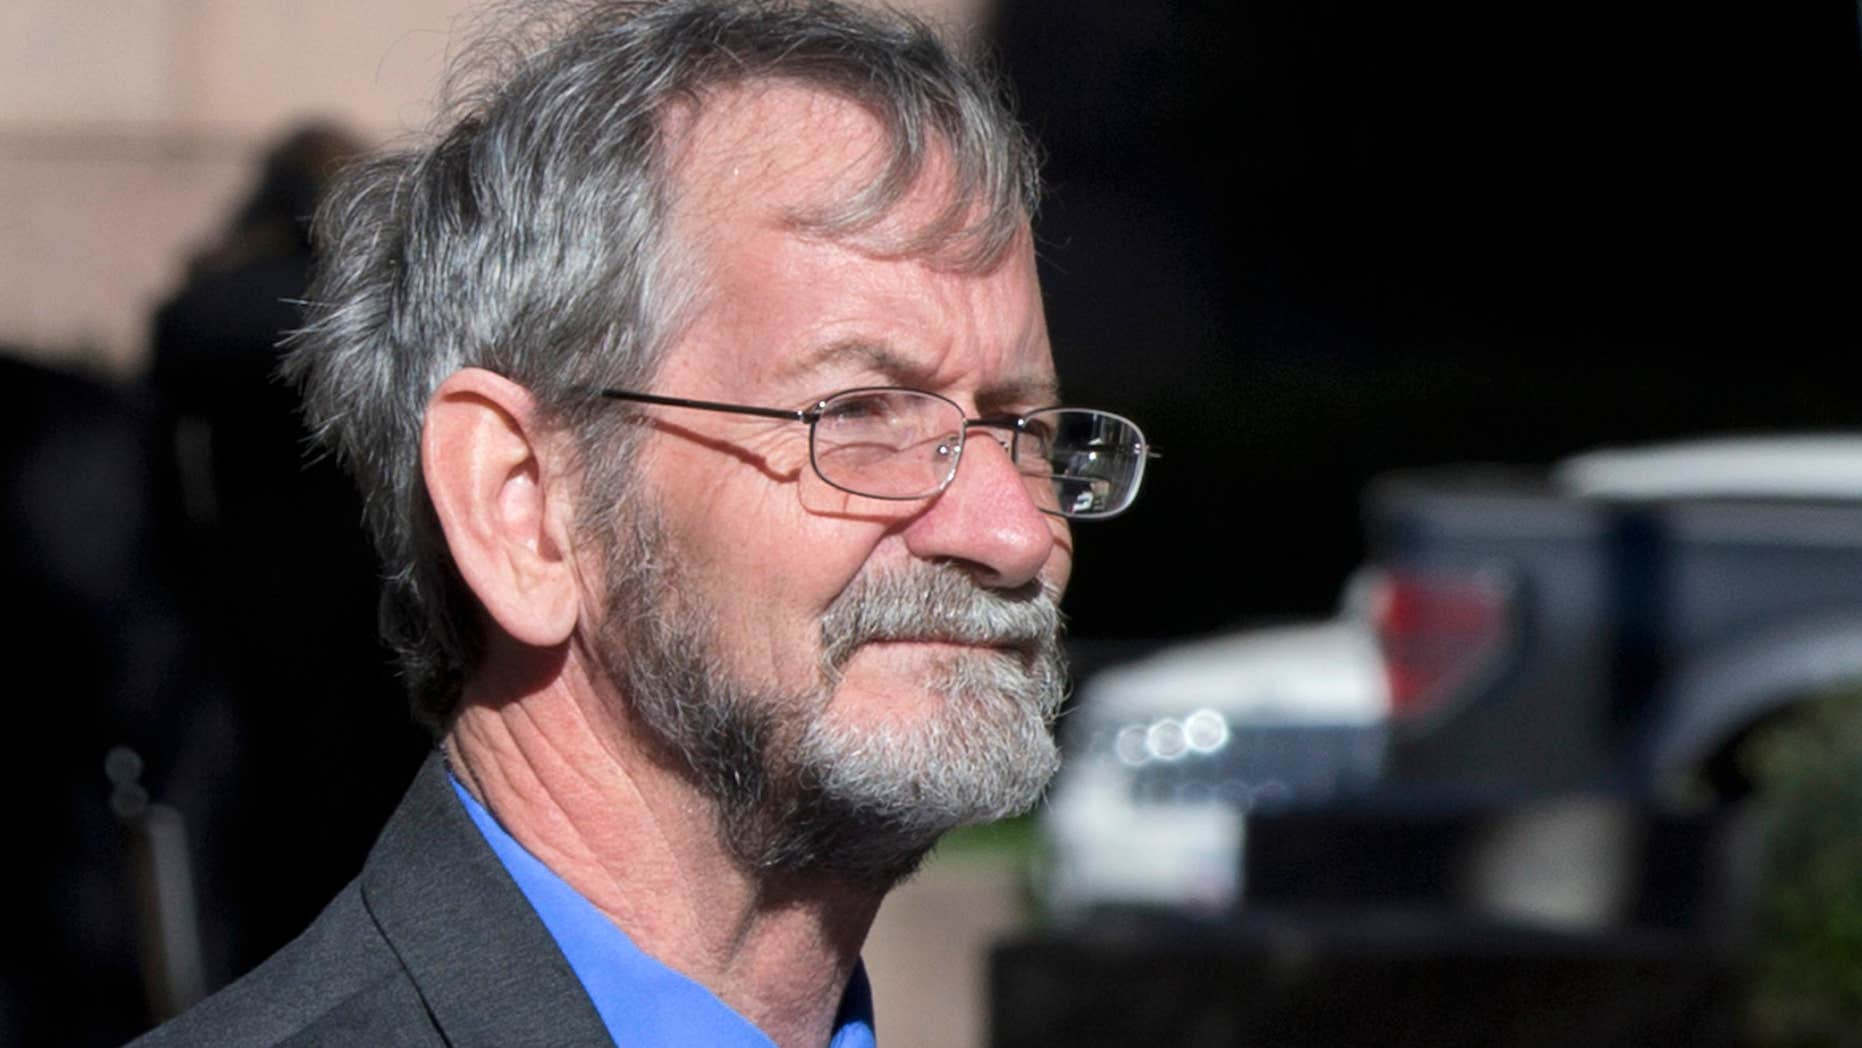 Nov. 20, 2015: Douglas Hughes, who flew a gyrocopter through the National Mall before landing on Capitol, arrives for a plea hearing at the federal courthouse in Washington.